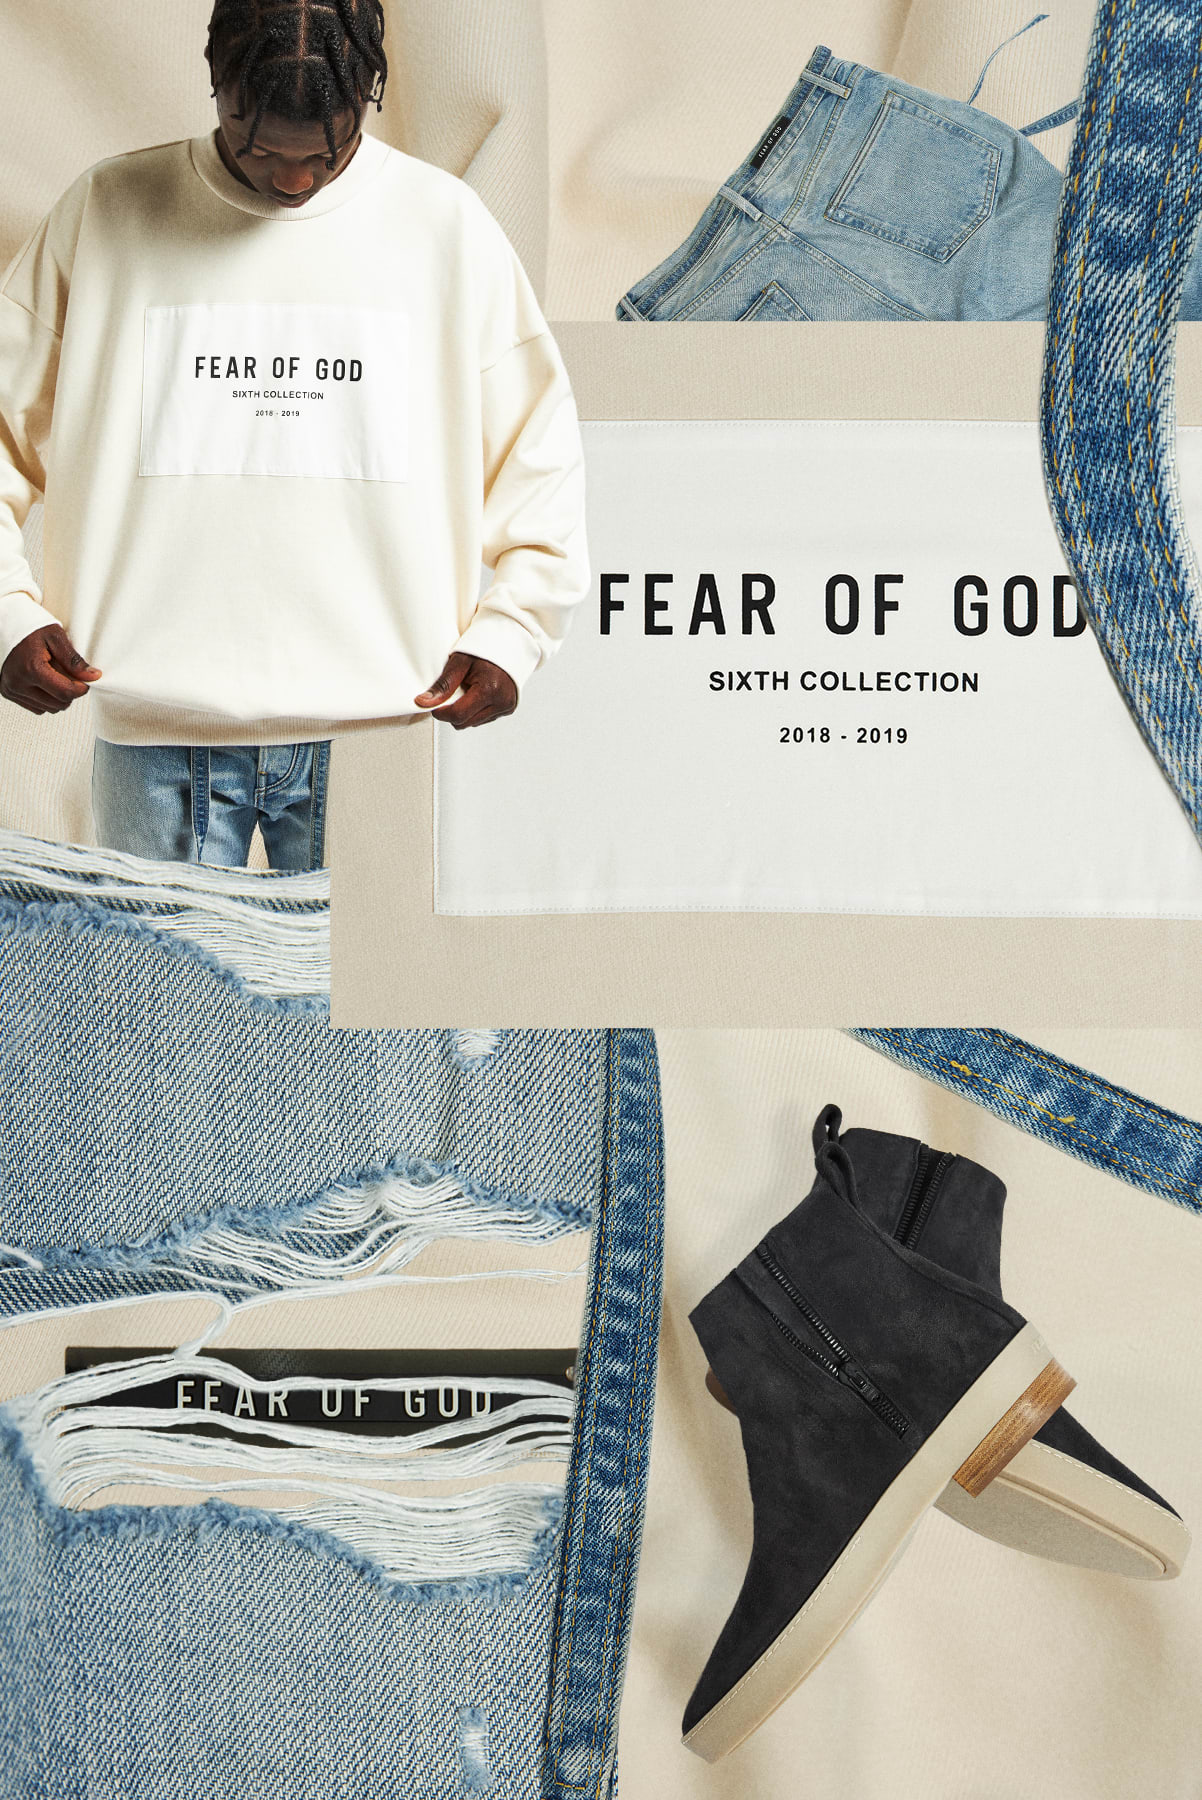 Curated 003 | Black Owned - FEAR OF GOD Slim Distressed Jean